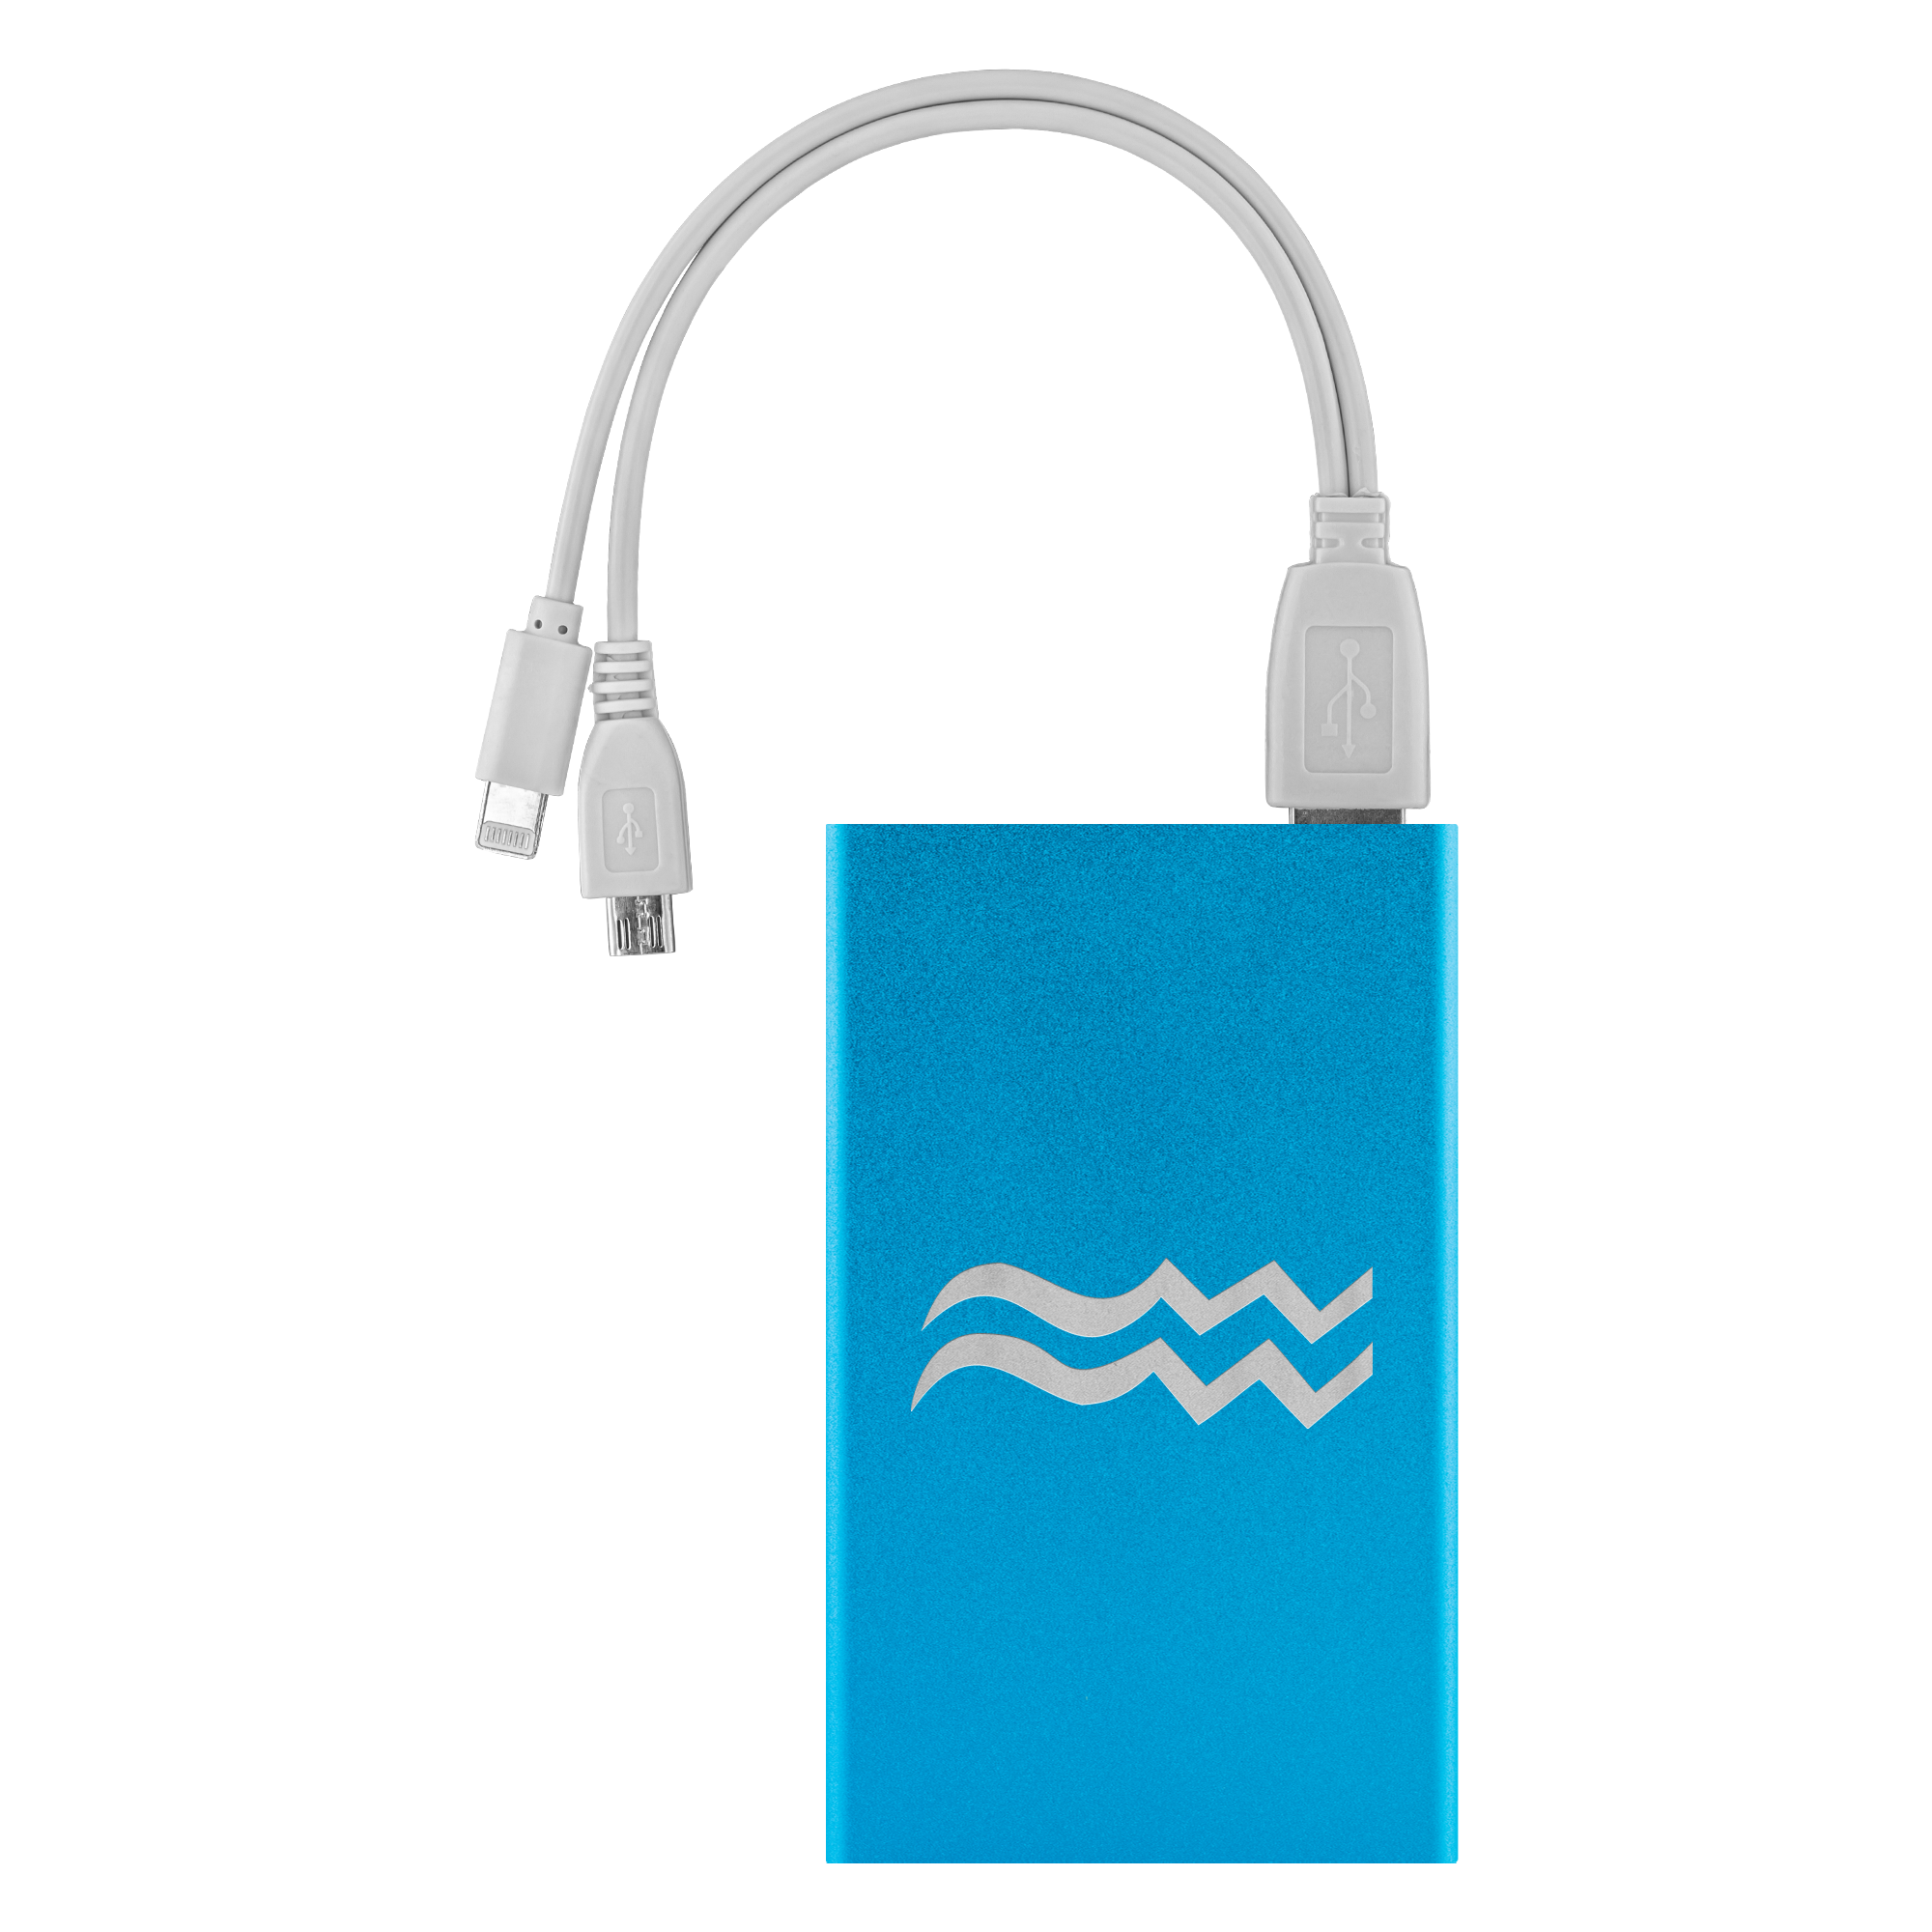 Zodiac Aquarius Power Bank